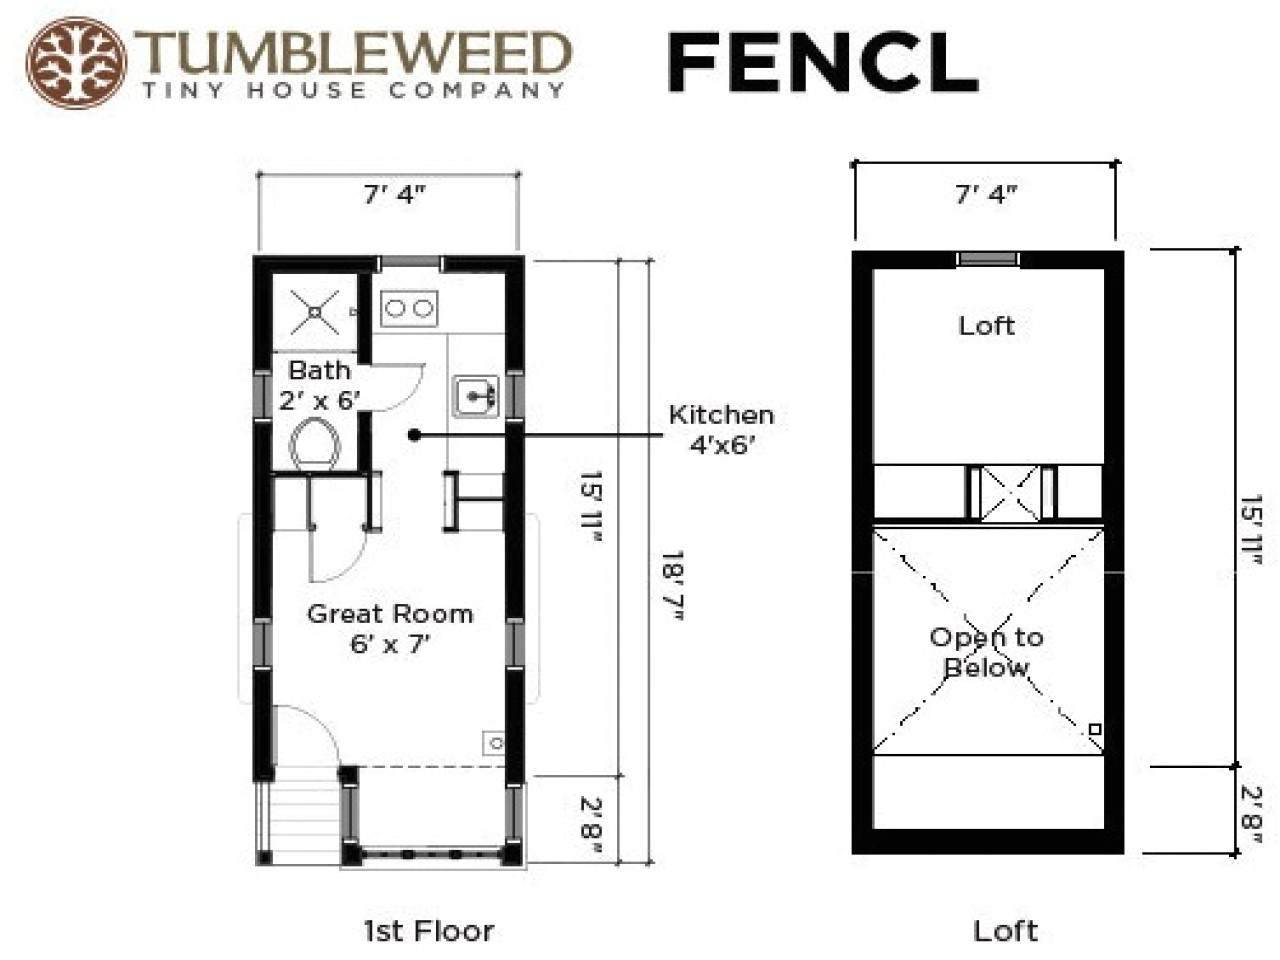 Tiny Home Plans X on tiny dwellings, tiny custom homes, built-in furniture plans, tiny log homes, tiny dream homes, pvc pipe playhouse plans, floor plans, tiny mountain homes, tiny bathrooms, tiny building, house plans, tiny prefab homes, tiny luxury homes, tiny vacation homes, tiny modular homes,